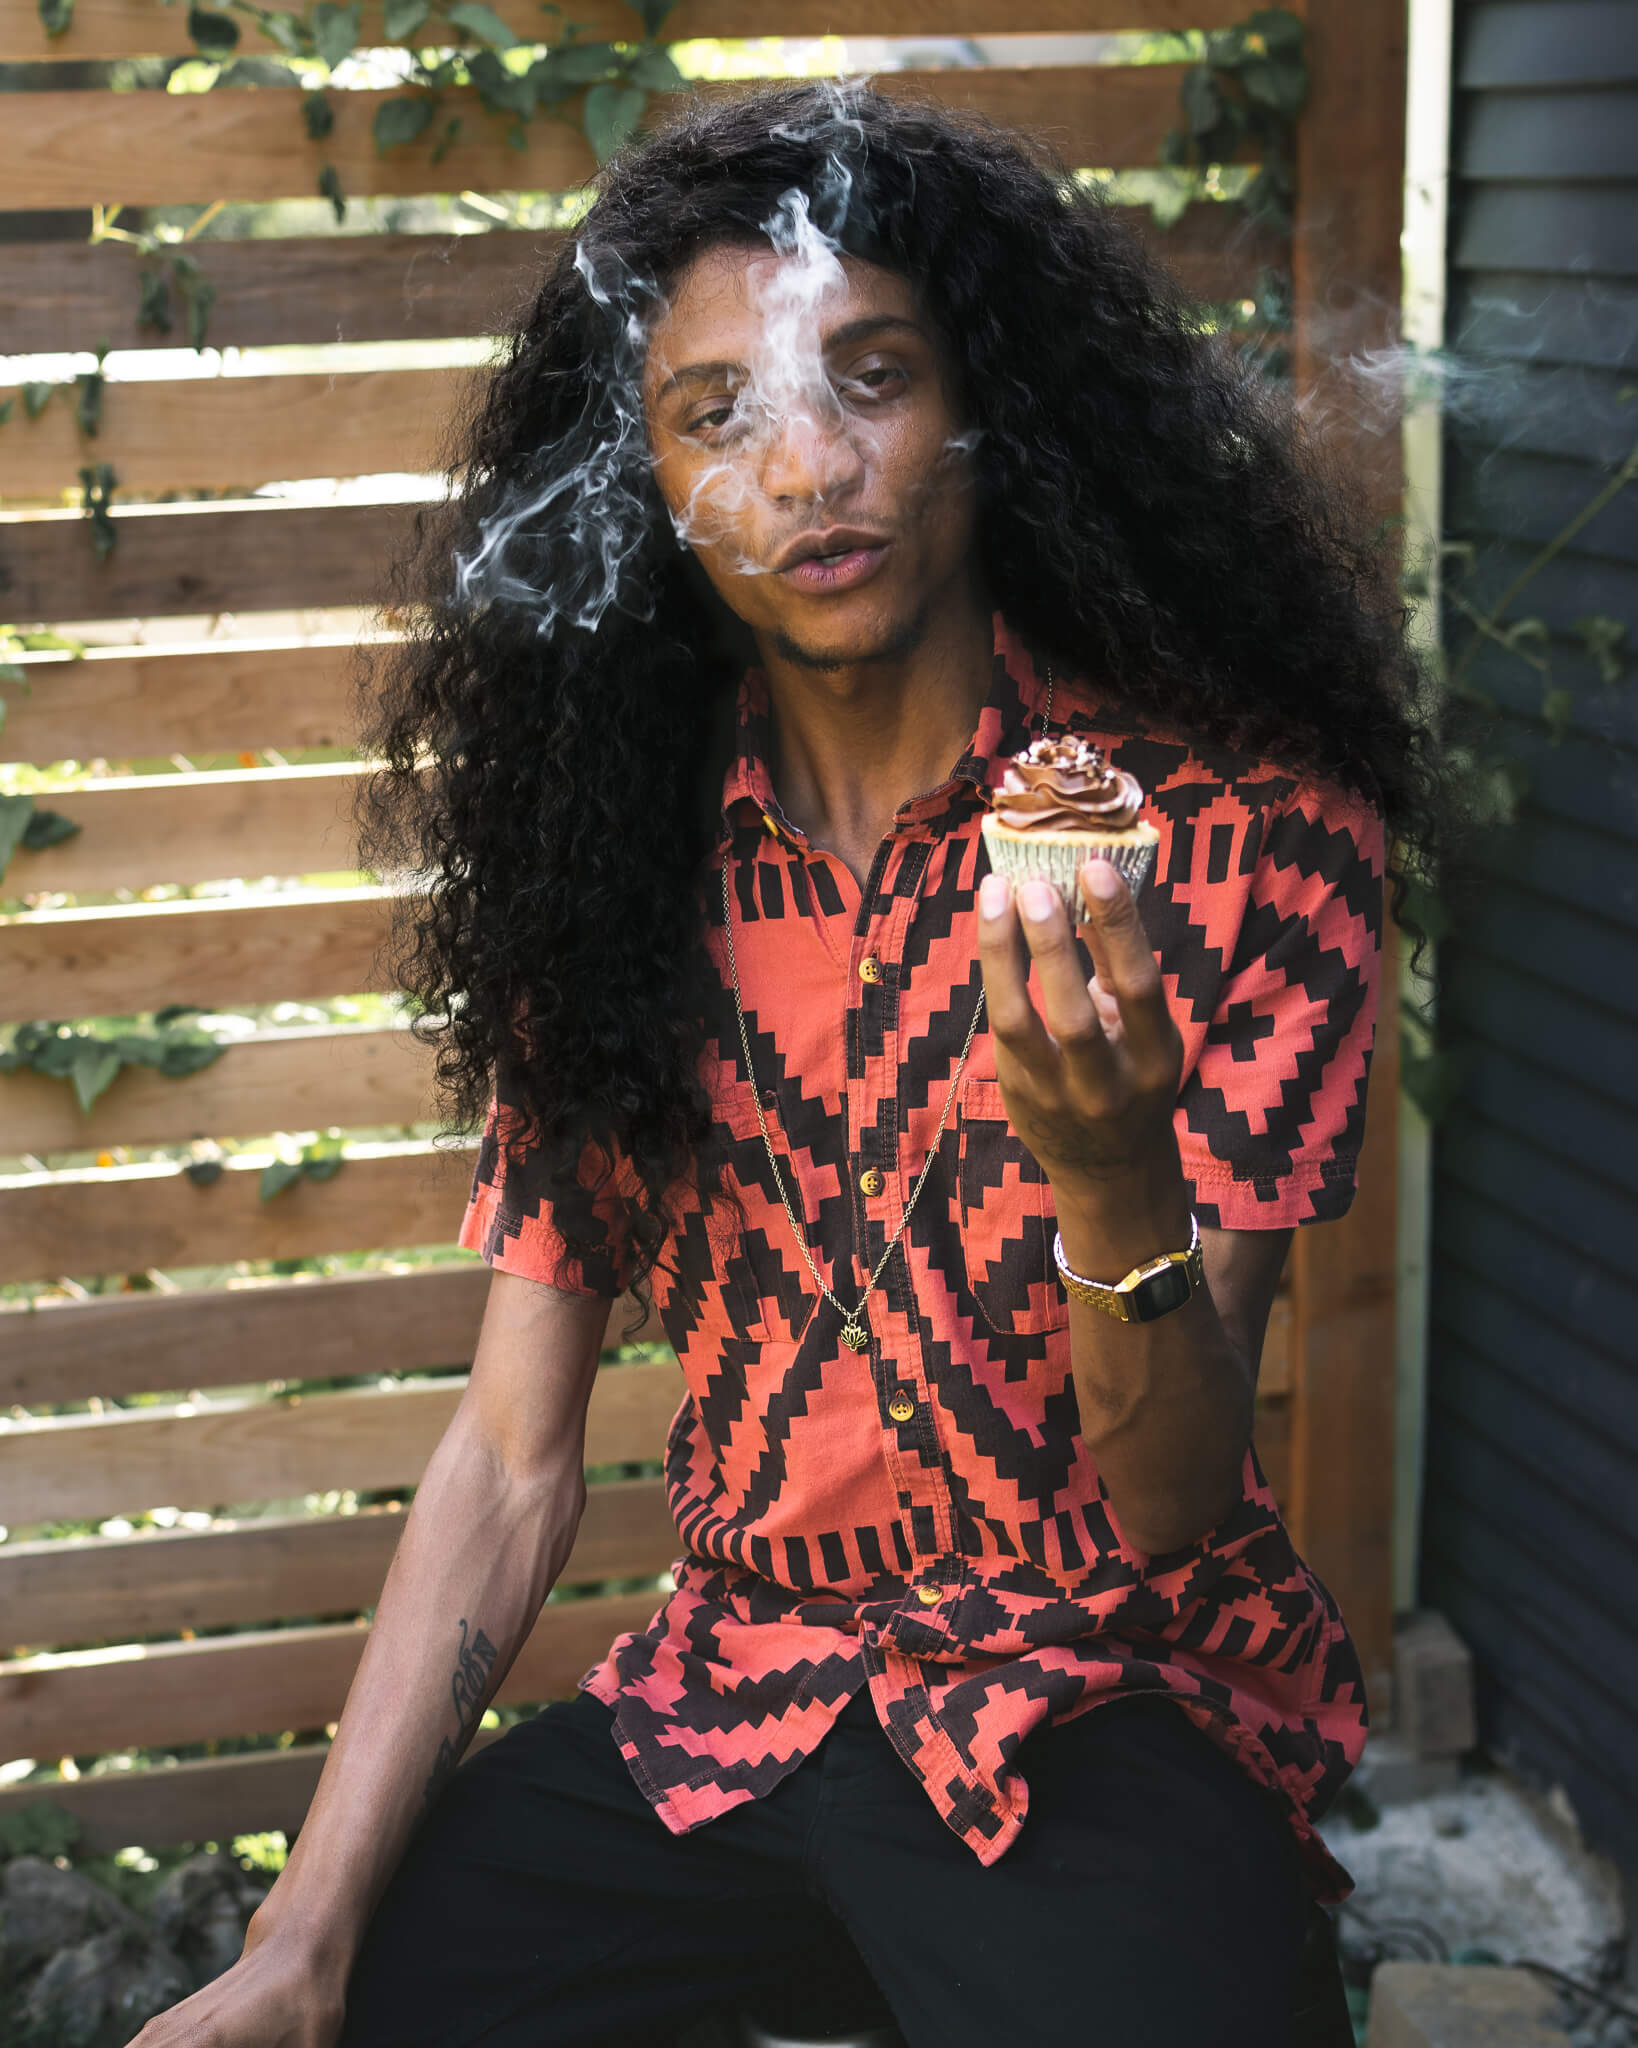 Dominique Dabs eating a cupcake and smoking a blunt